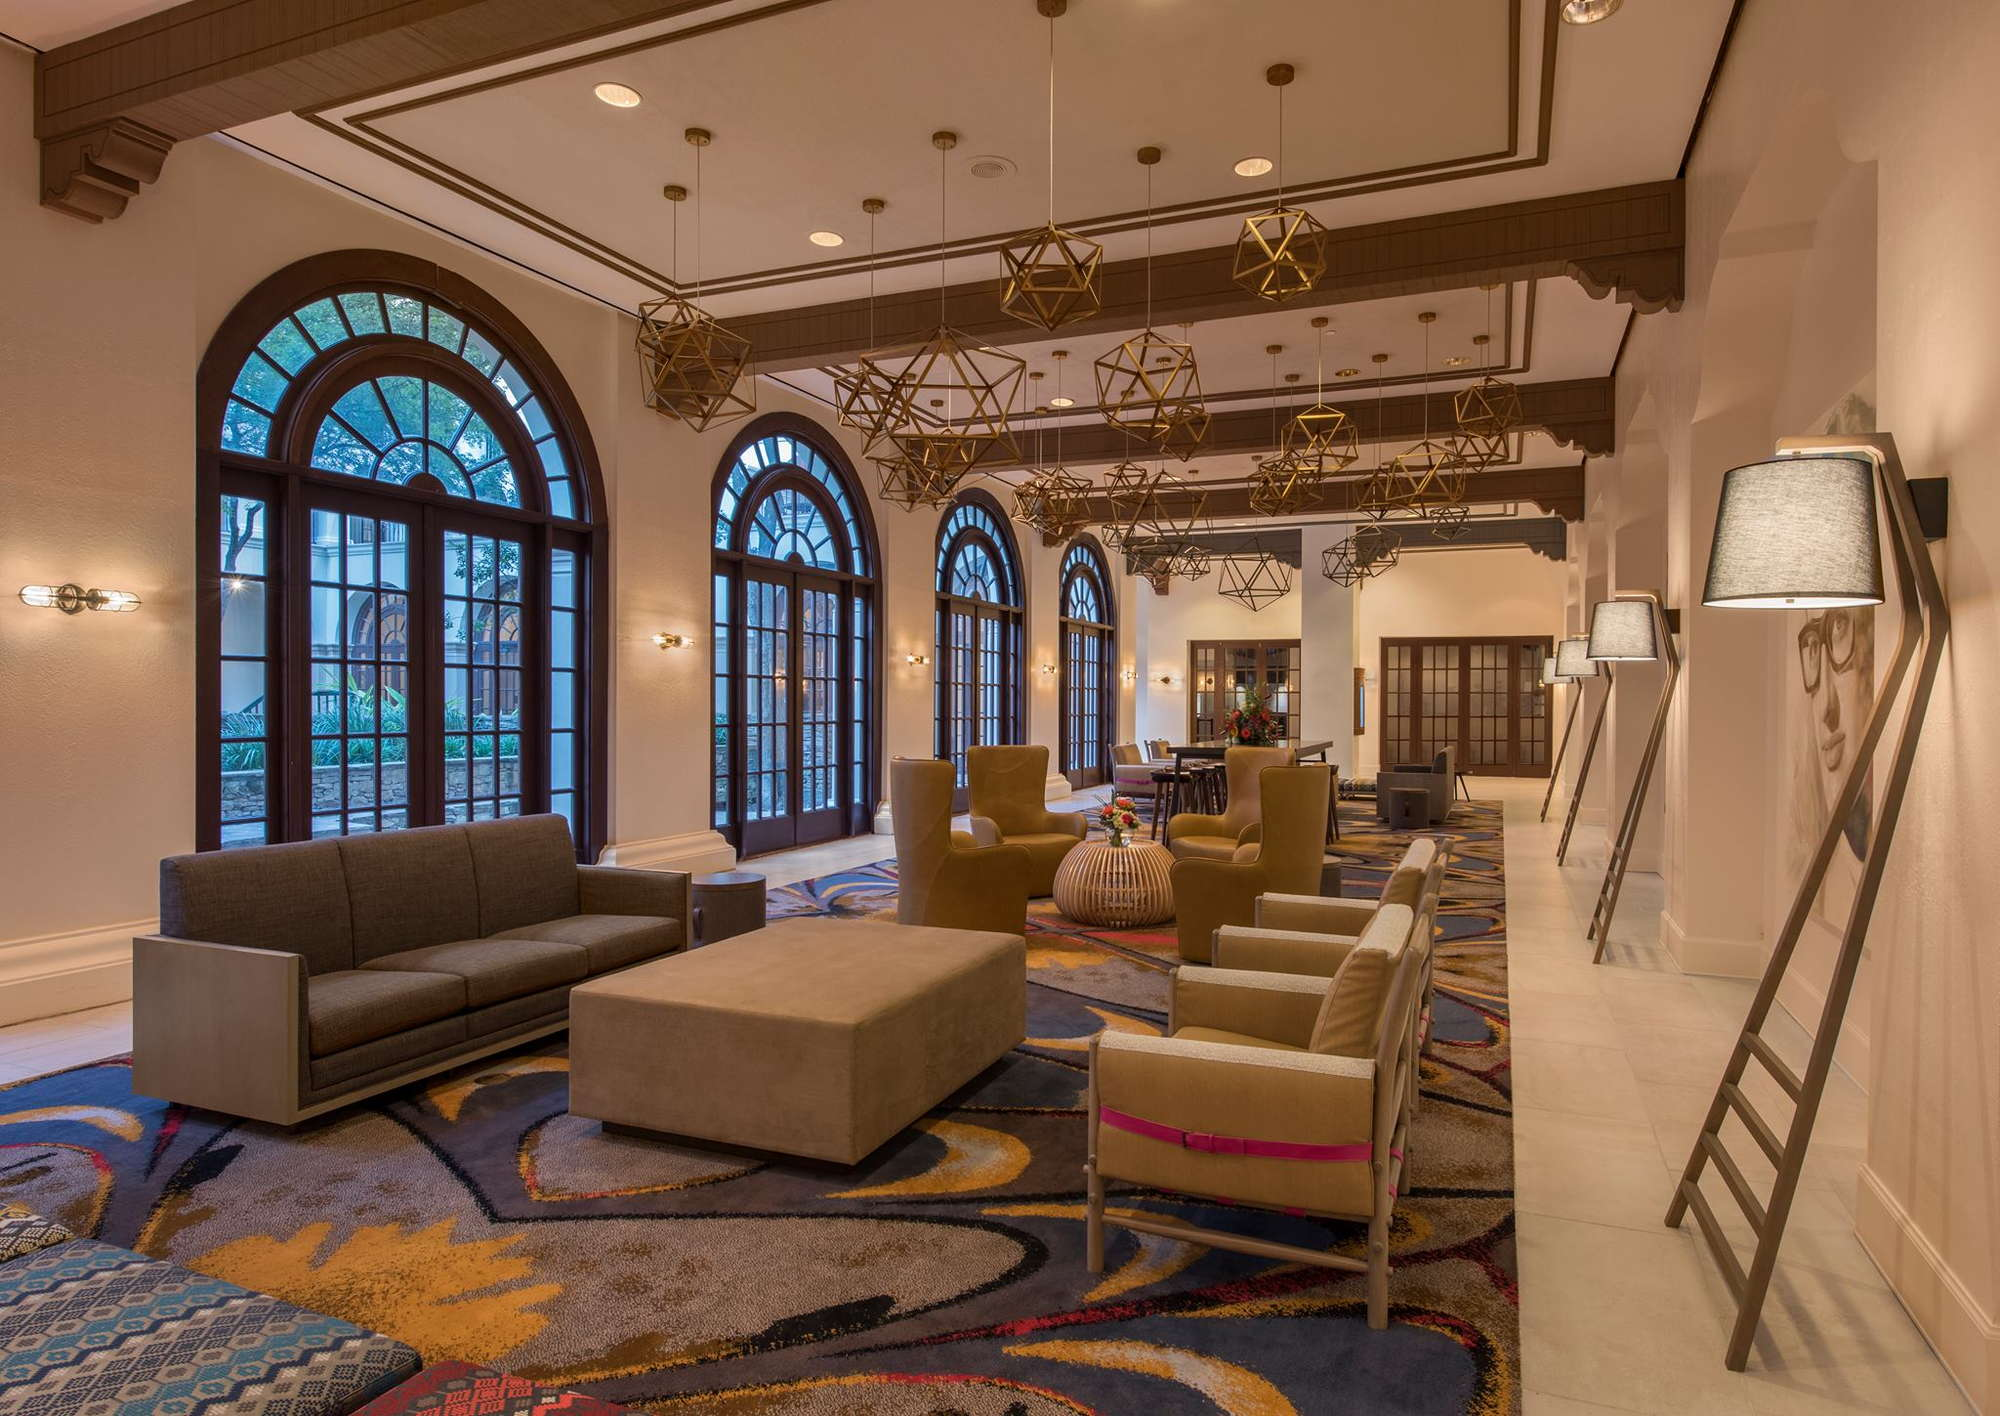 DoubleTree by Hilton Hotel Austin Expert Review | Fodor\'s Travel